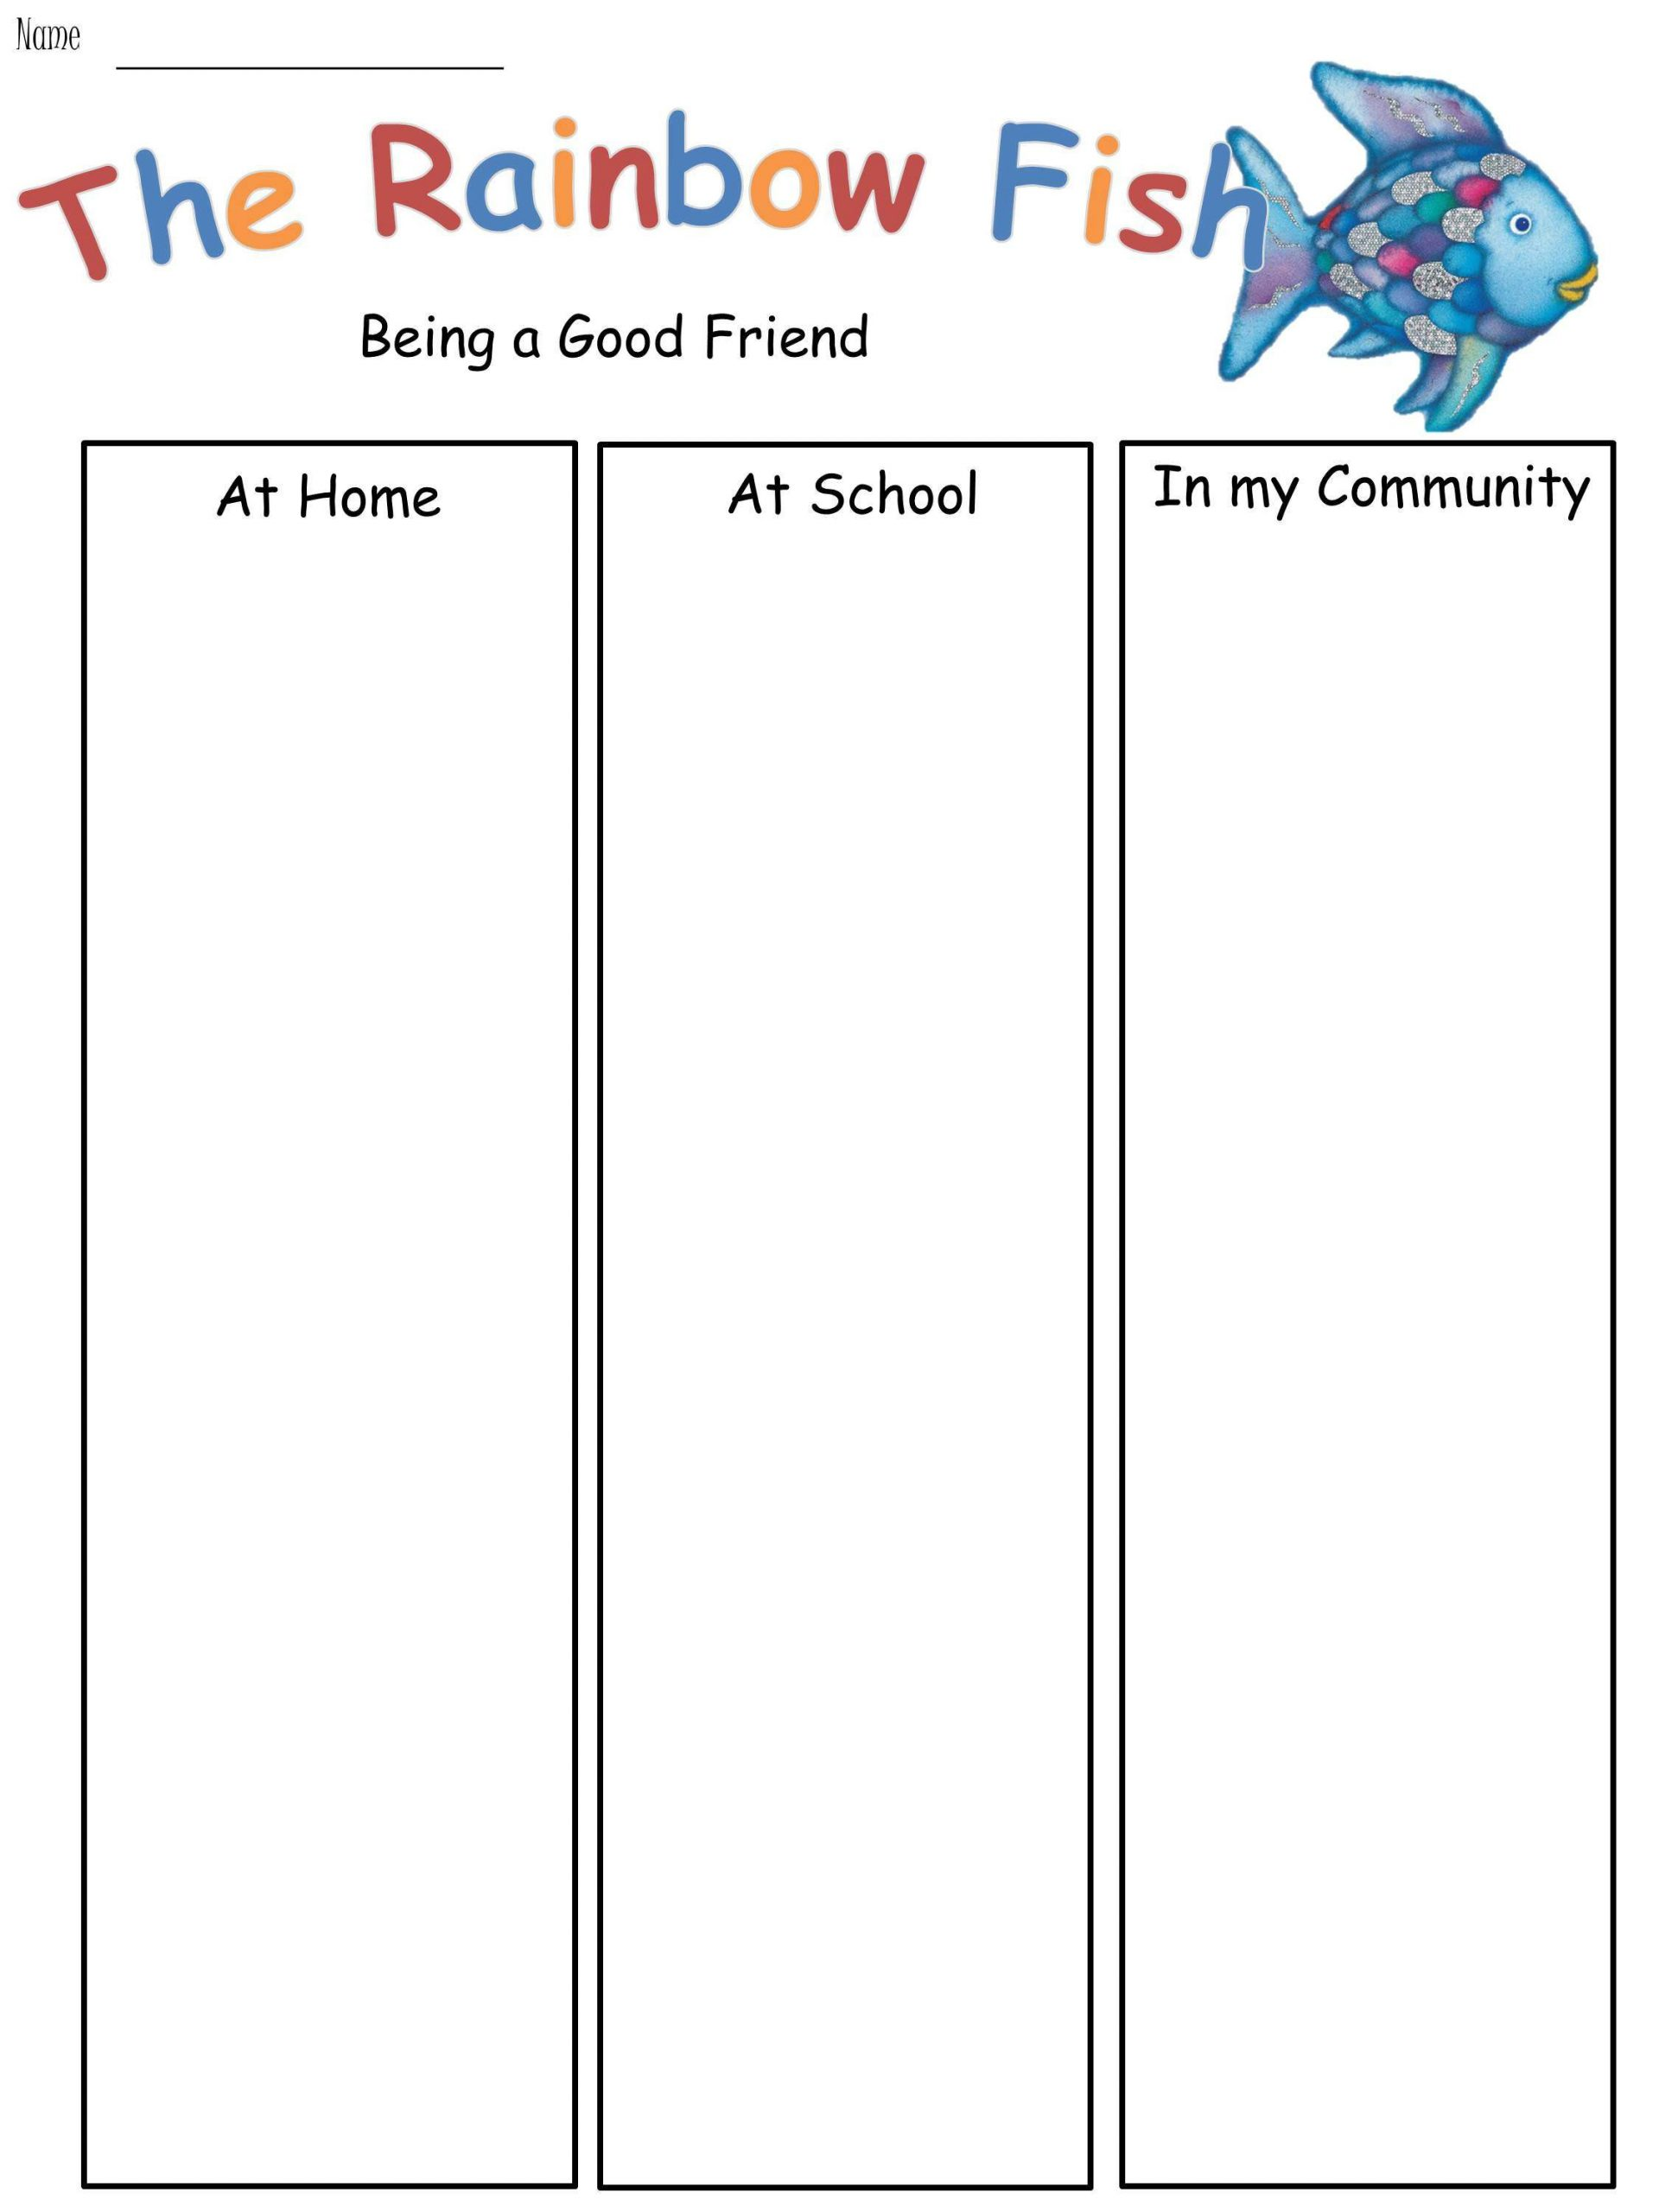 Rainbow Fish Printable Worksheets the Rainbow Fish Lesson Pack Animated Interactive Powerpoint & 11 Supporting Worksheets